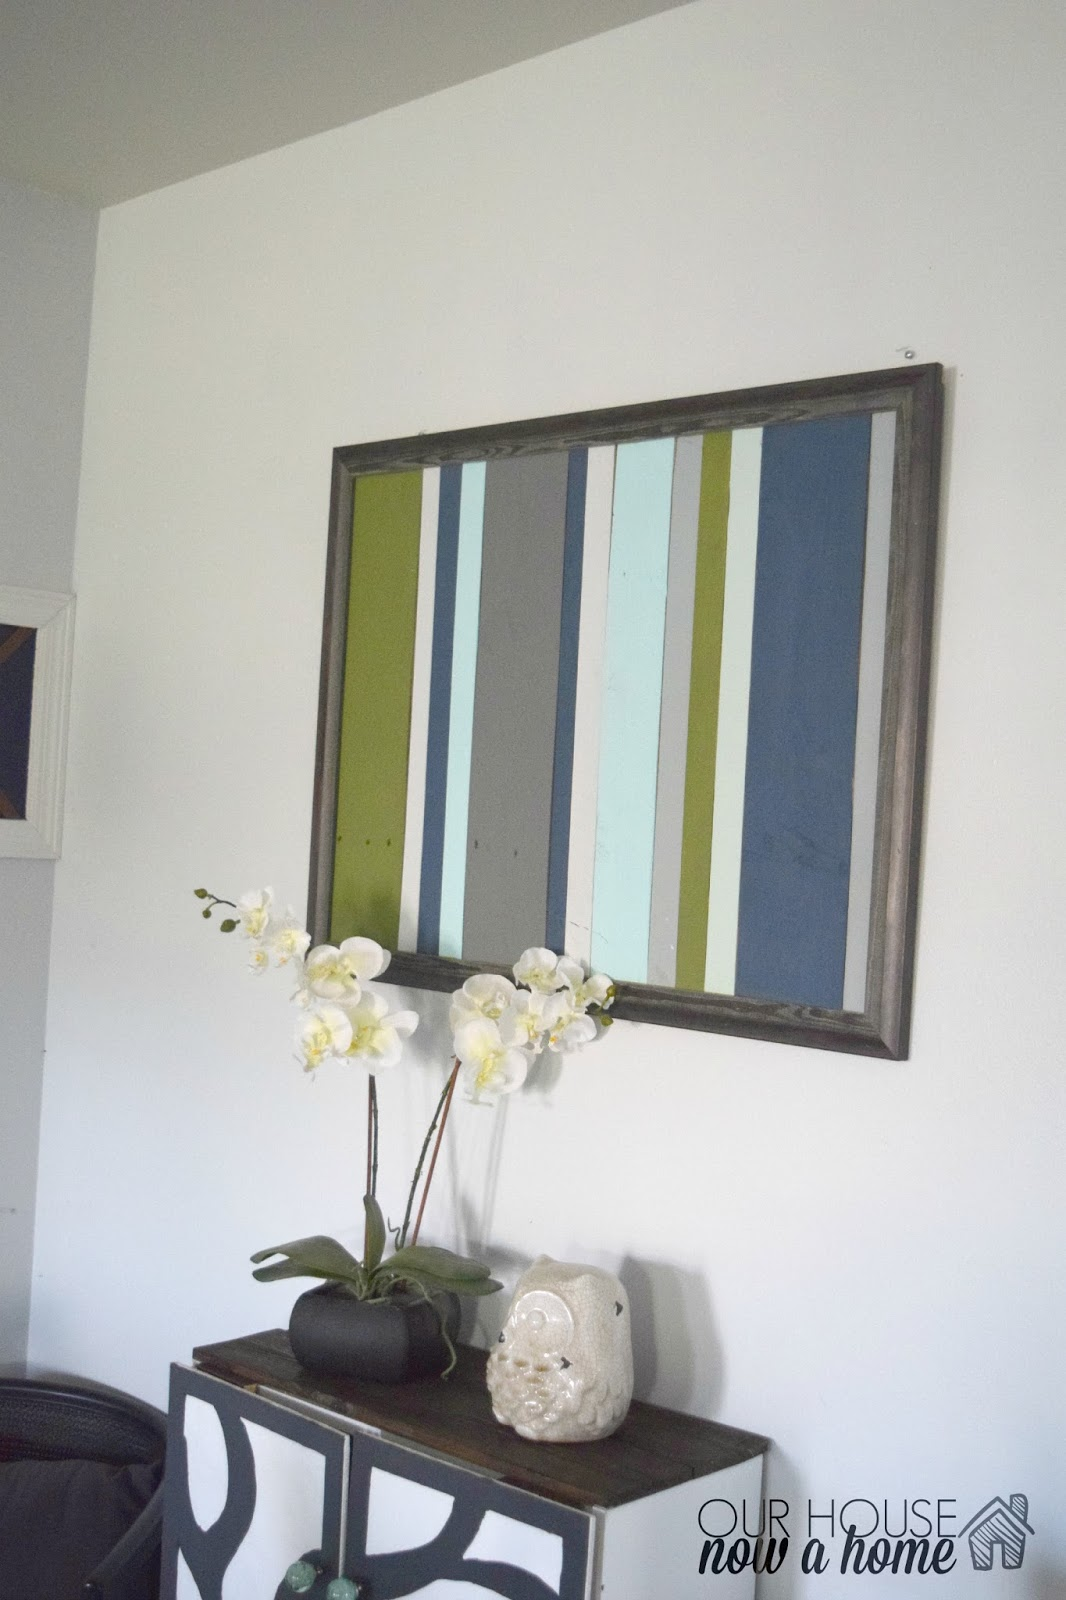 Broken wall art gets a new life with this diy wood pallet frame • our house now a home